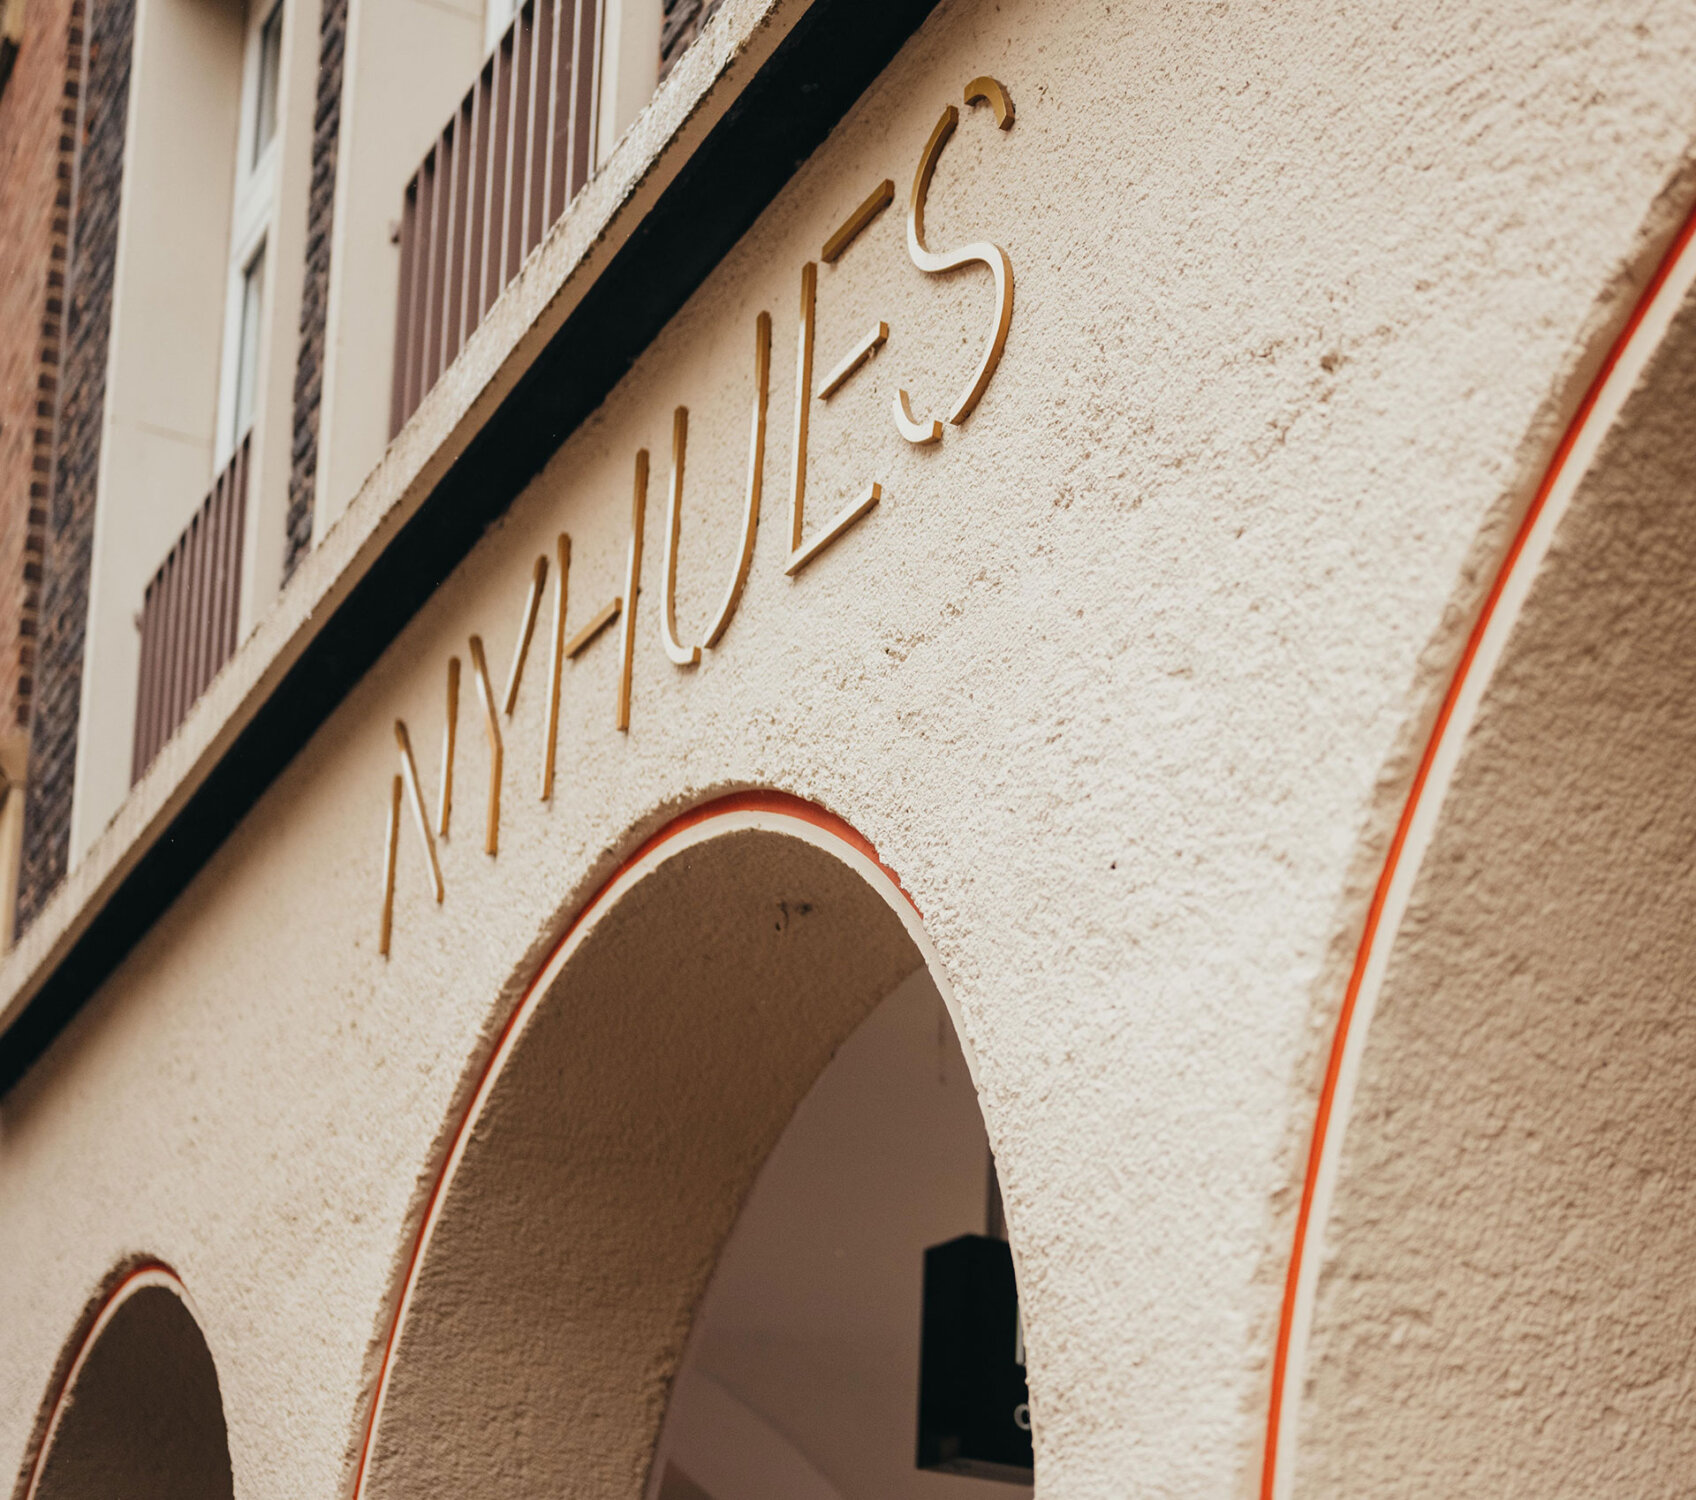 Nyhues Schild